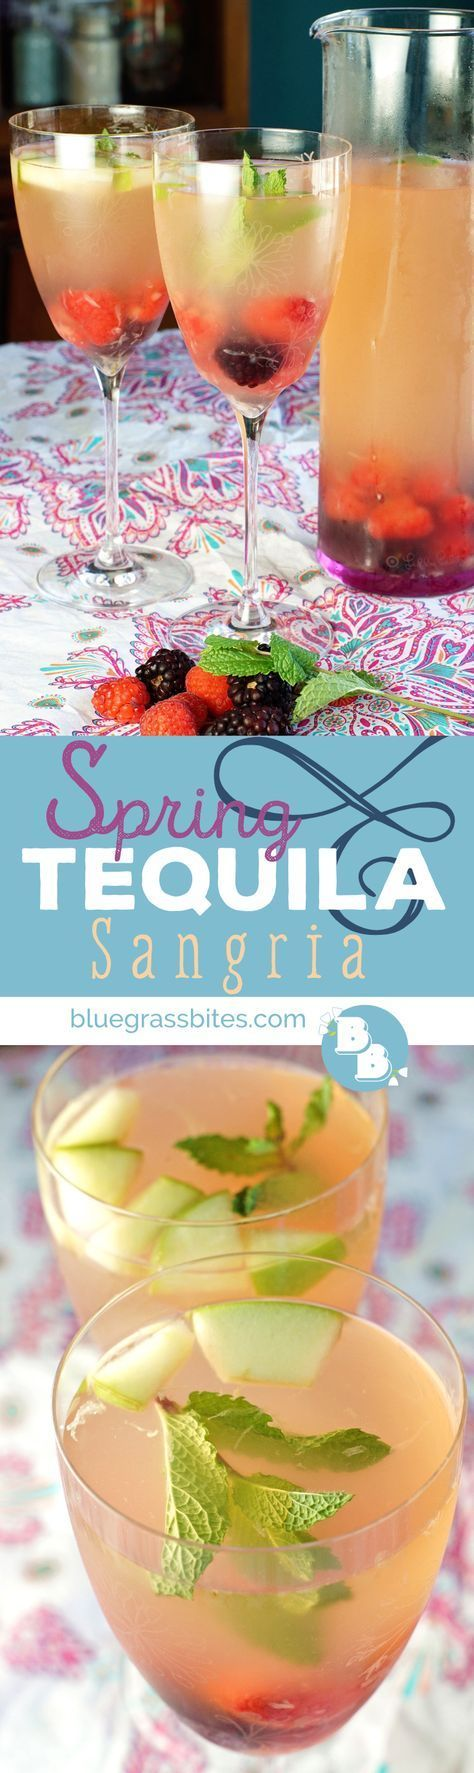 Spring Tequila Sangria | This refreshing white wine/tequila cocktail is packed with spring berries, sweetened with agave nectar, and contains notes of fresh mint.